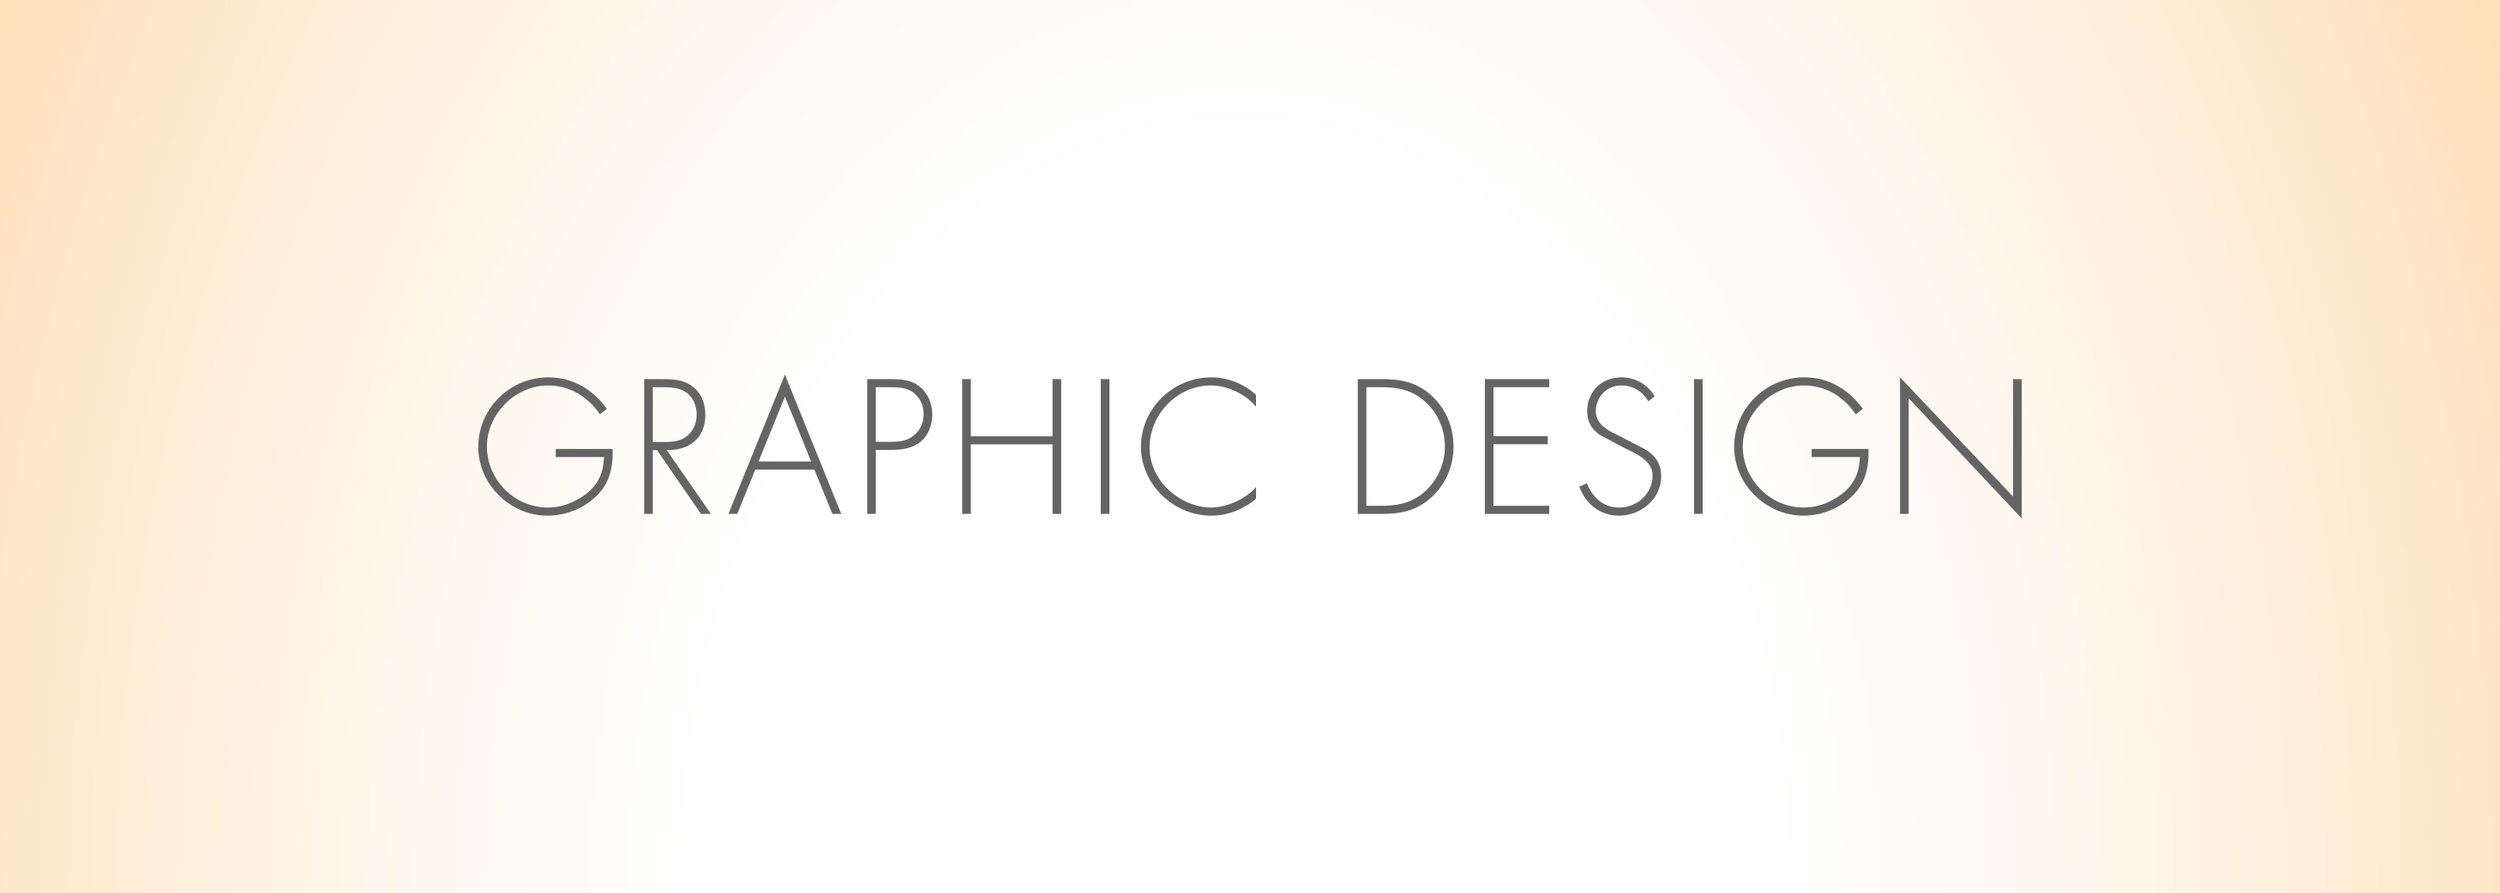 - Original designs for on- and offline: from posters, illustrations, packaging design and business cards to web banners, social media visuals, ads and 3D modelling. You name it, we can do it. We provide visual solutions for every assignment. We also produce the offline visuals and install the end product.